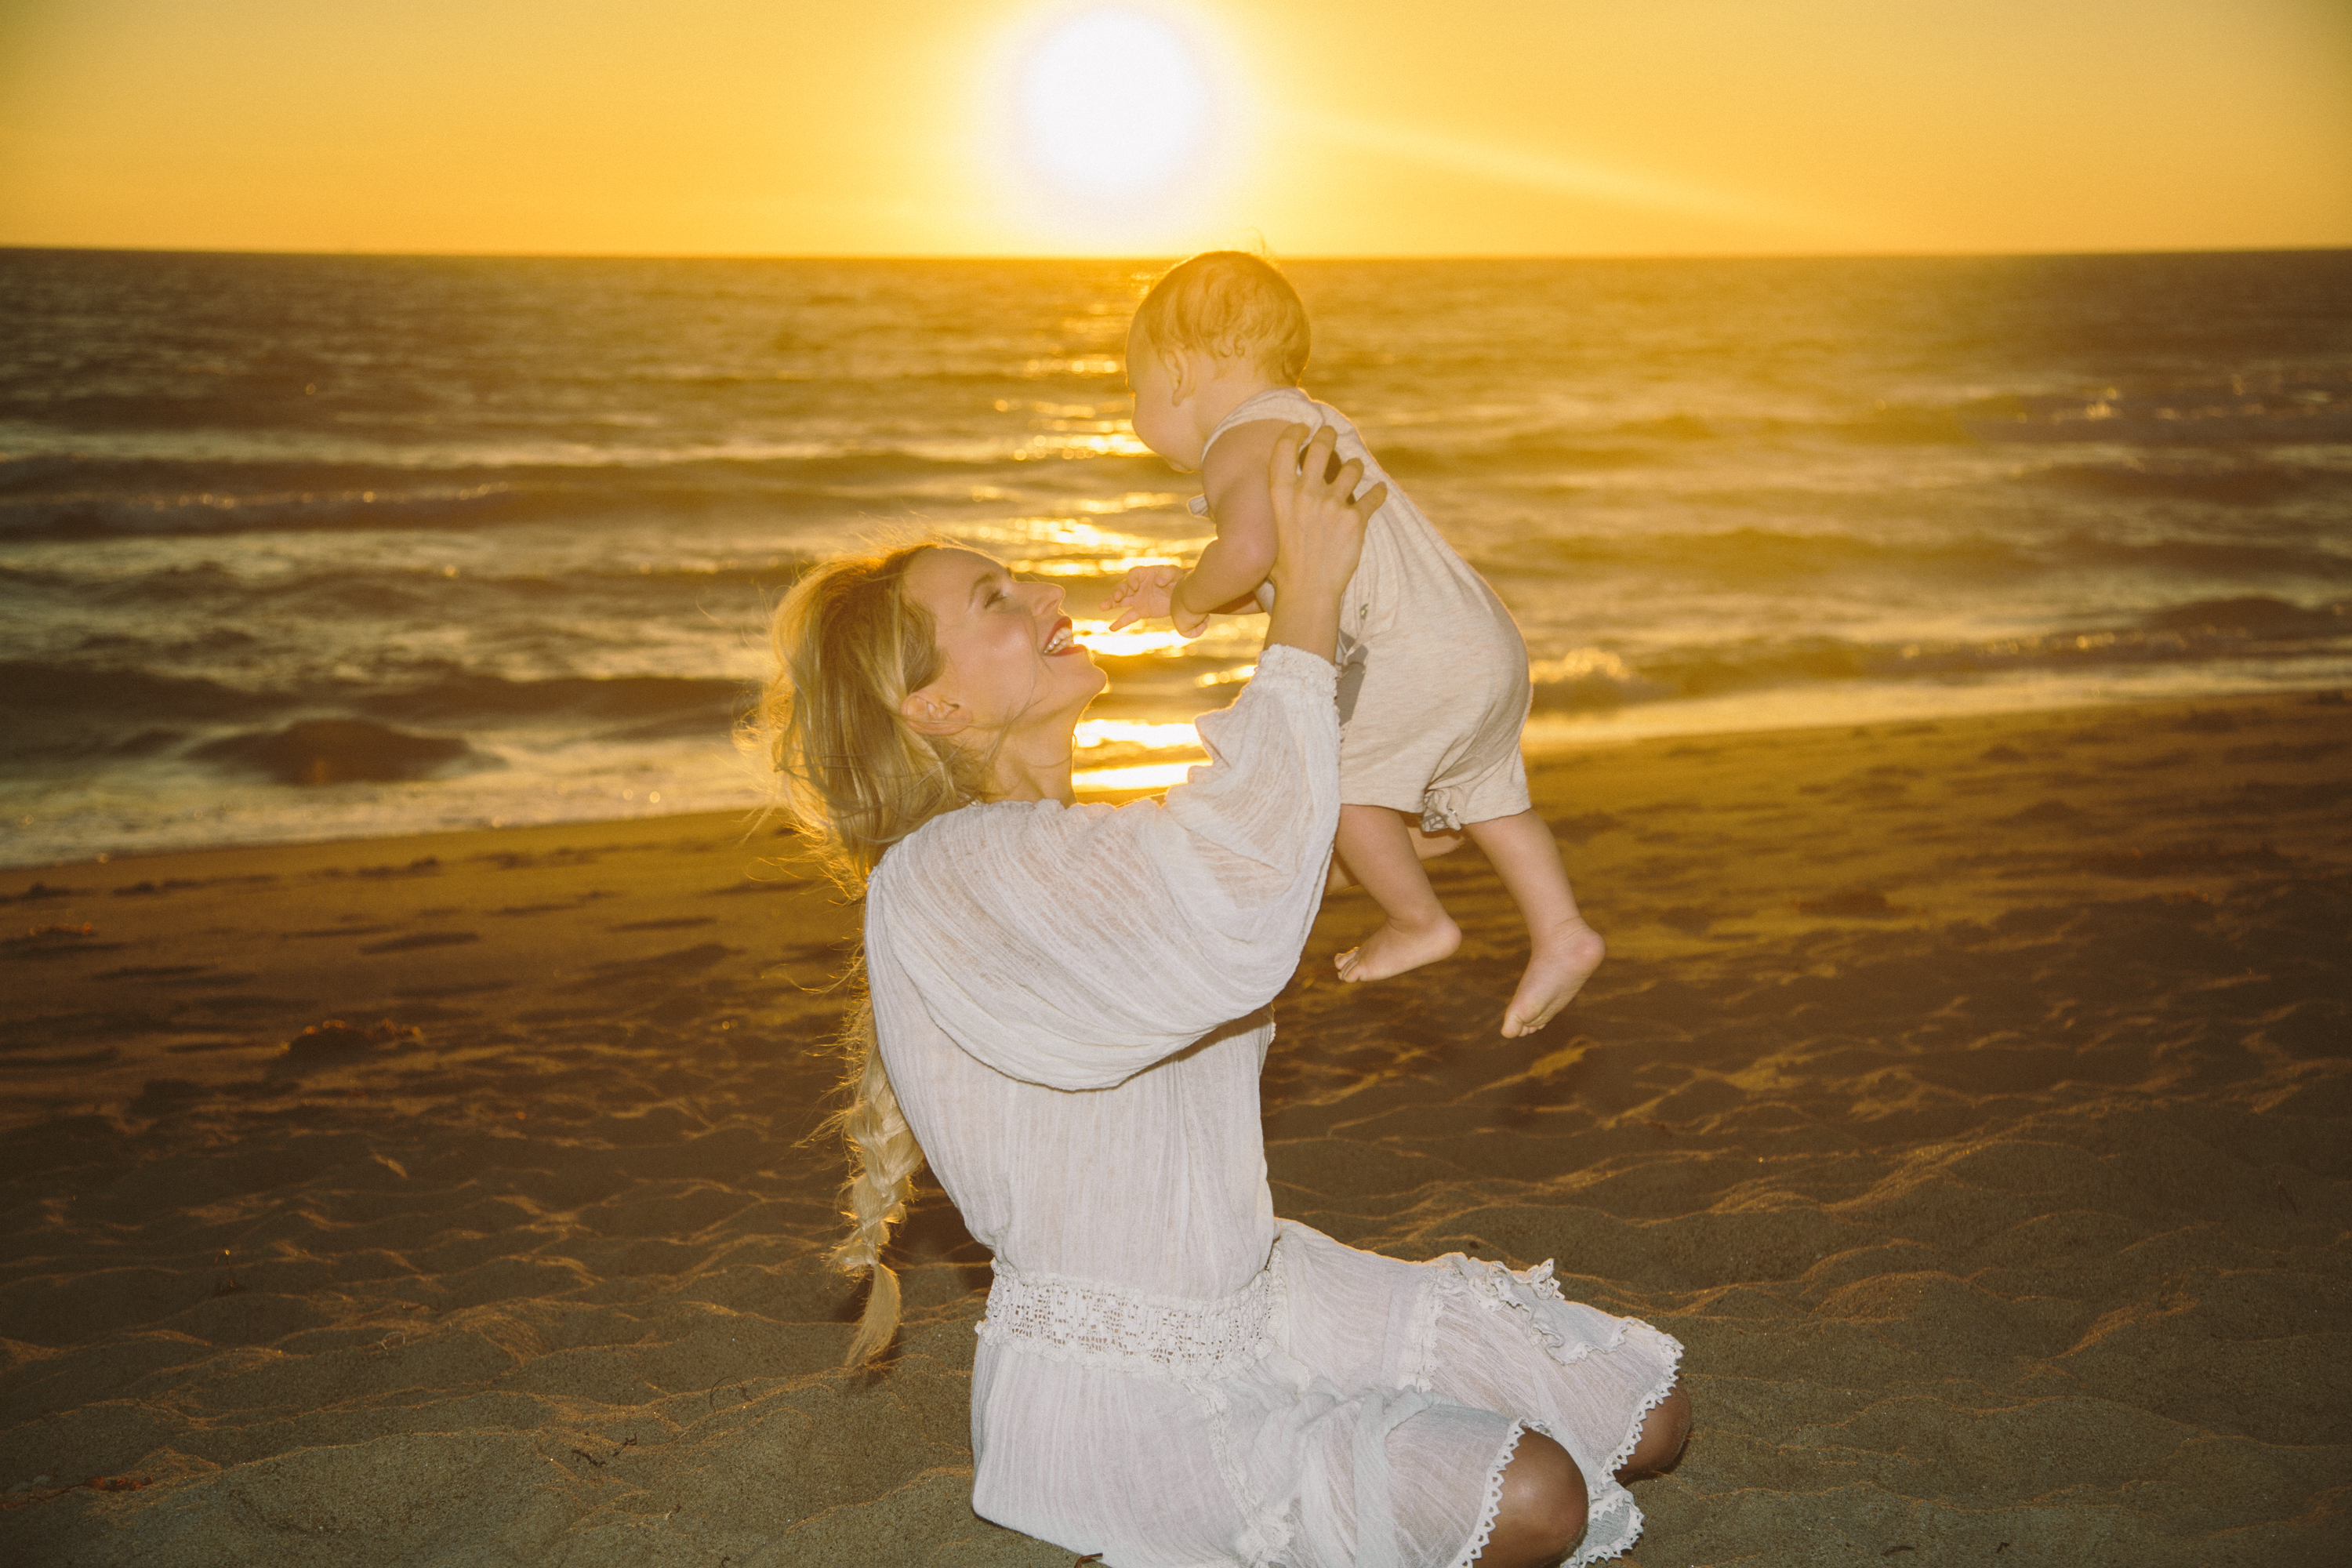 xDiana-Milena-Sunkissed-Blonde-Beach-Ocean-Motherhood-Style-Baby-Parenting-White-Dress-Bohemian